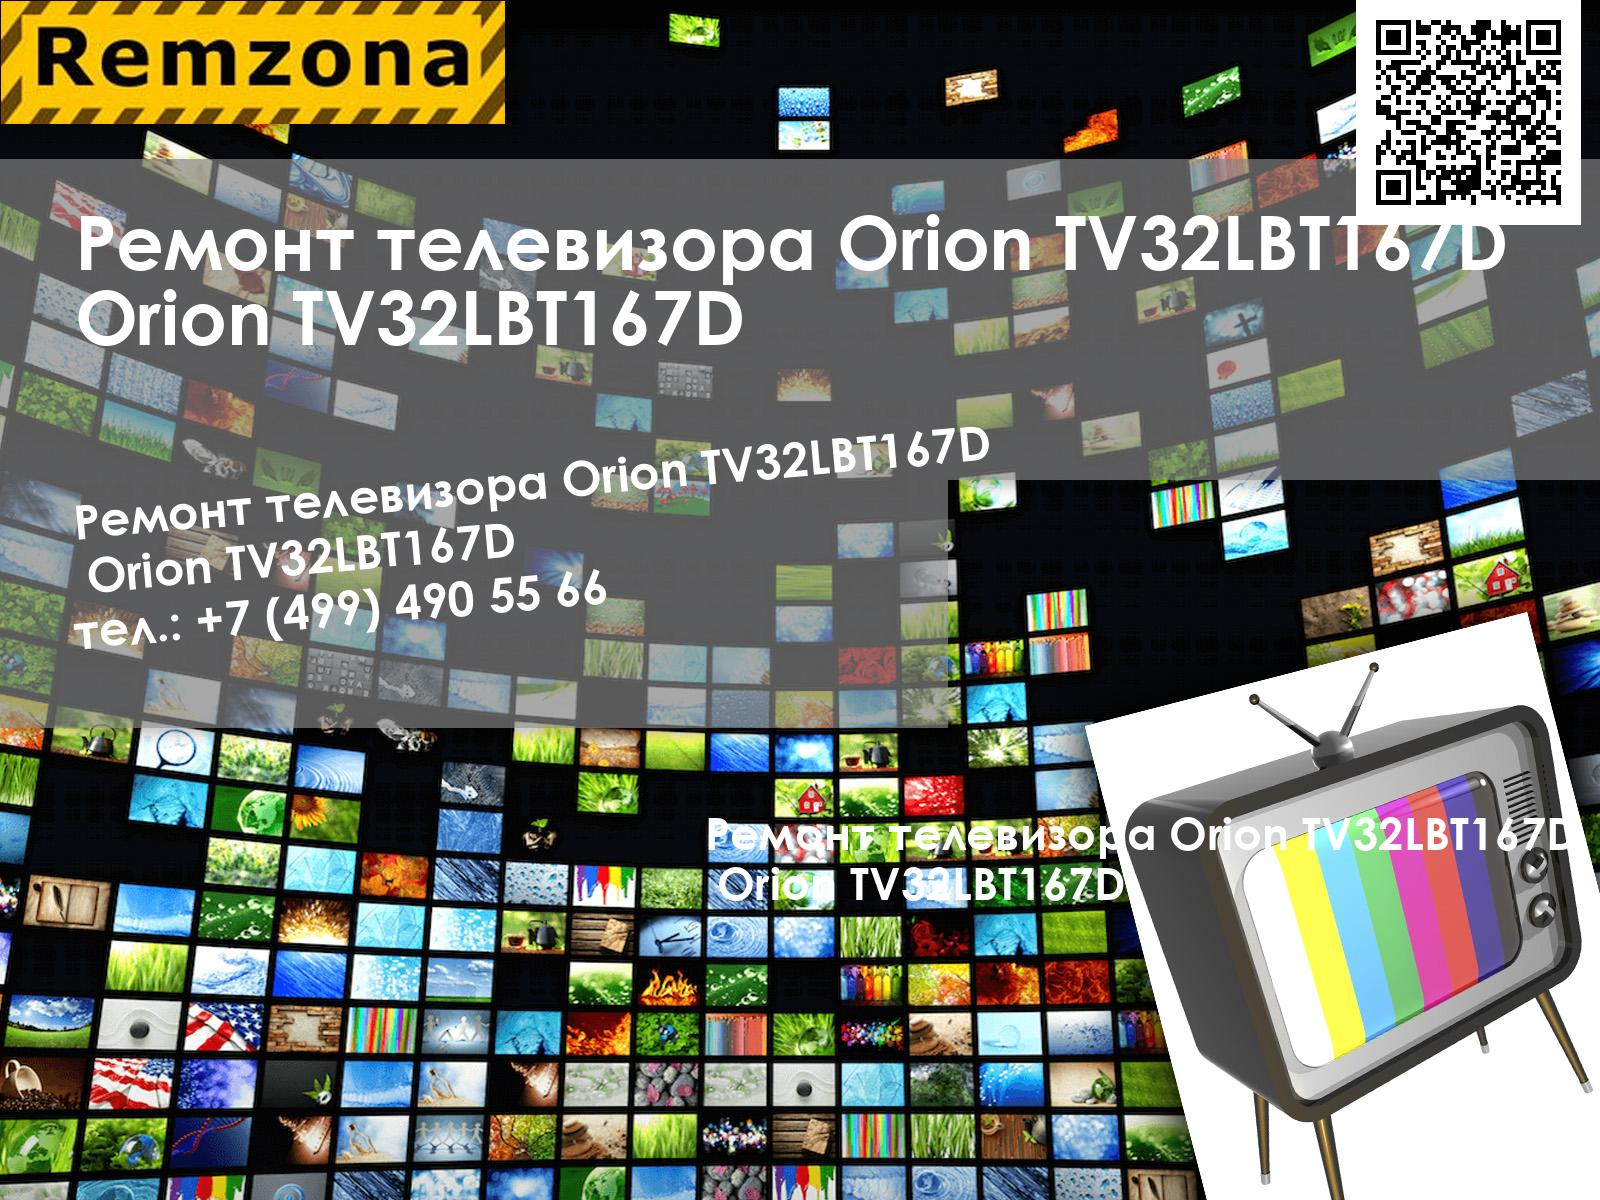 Ремонт телевизора Orion TV32LBT167D